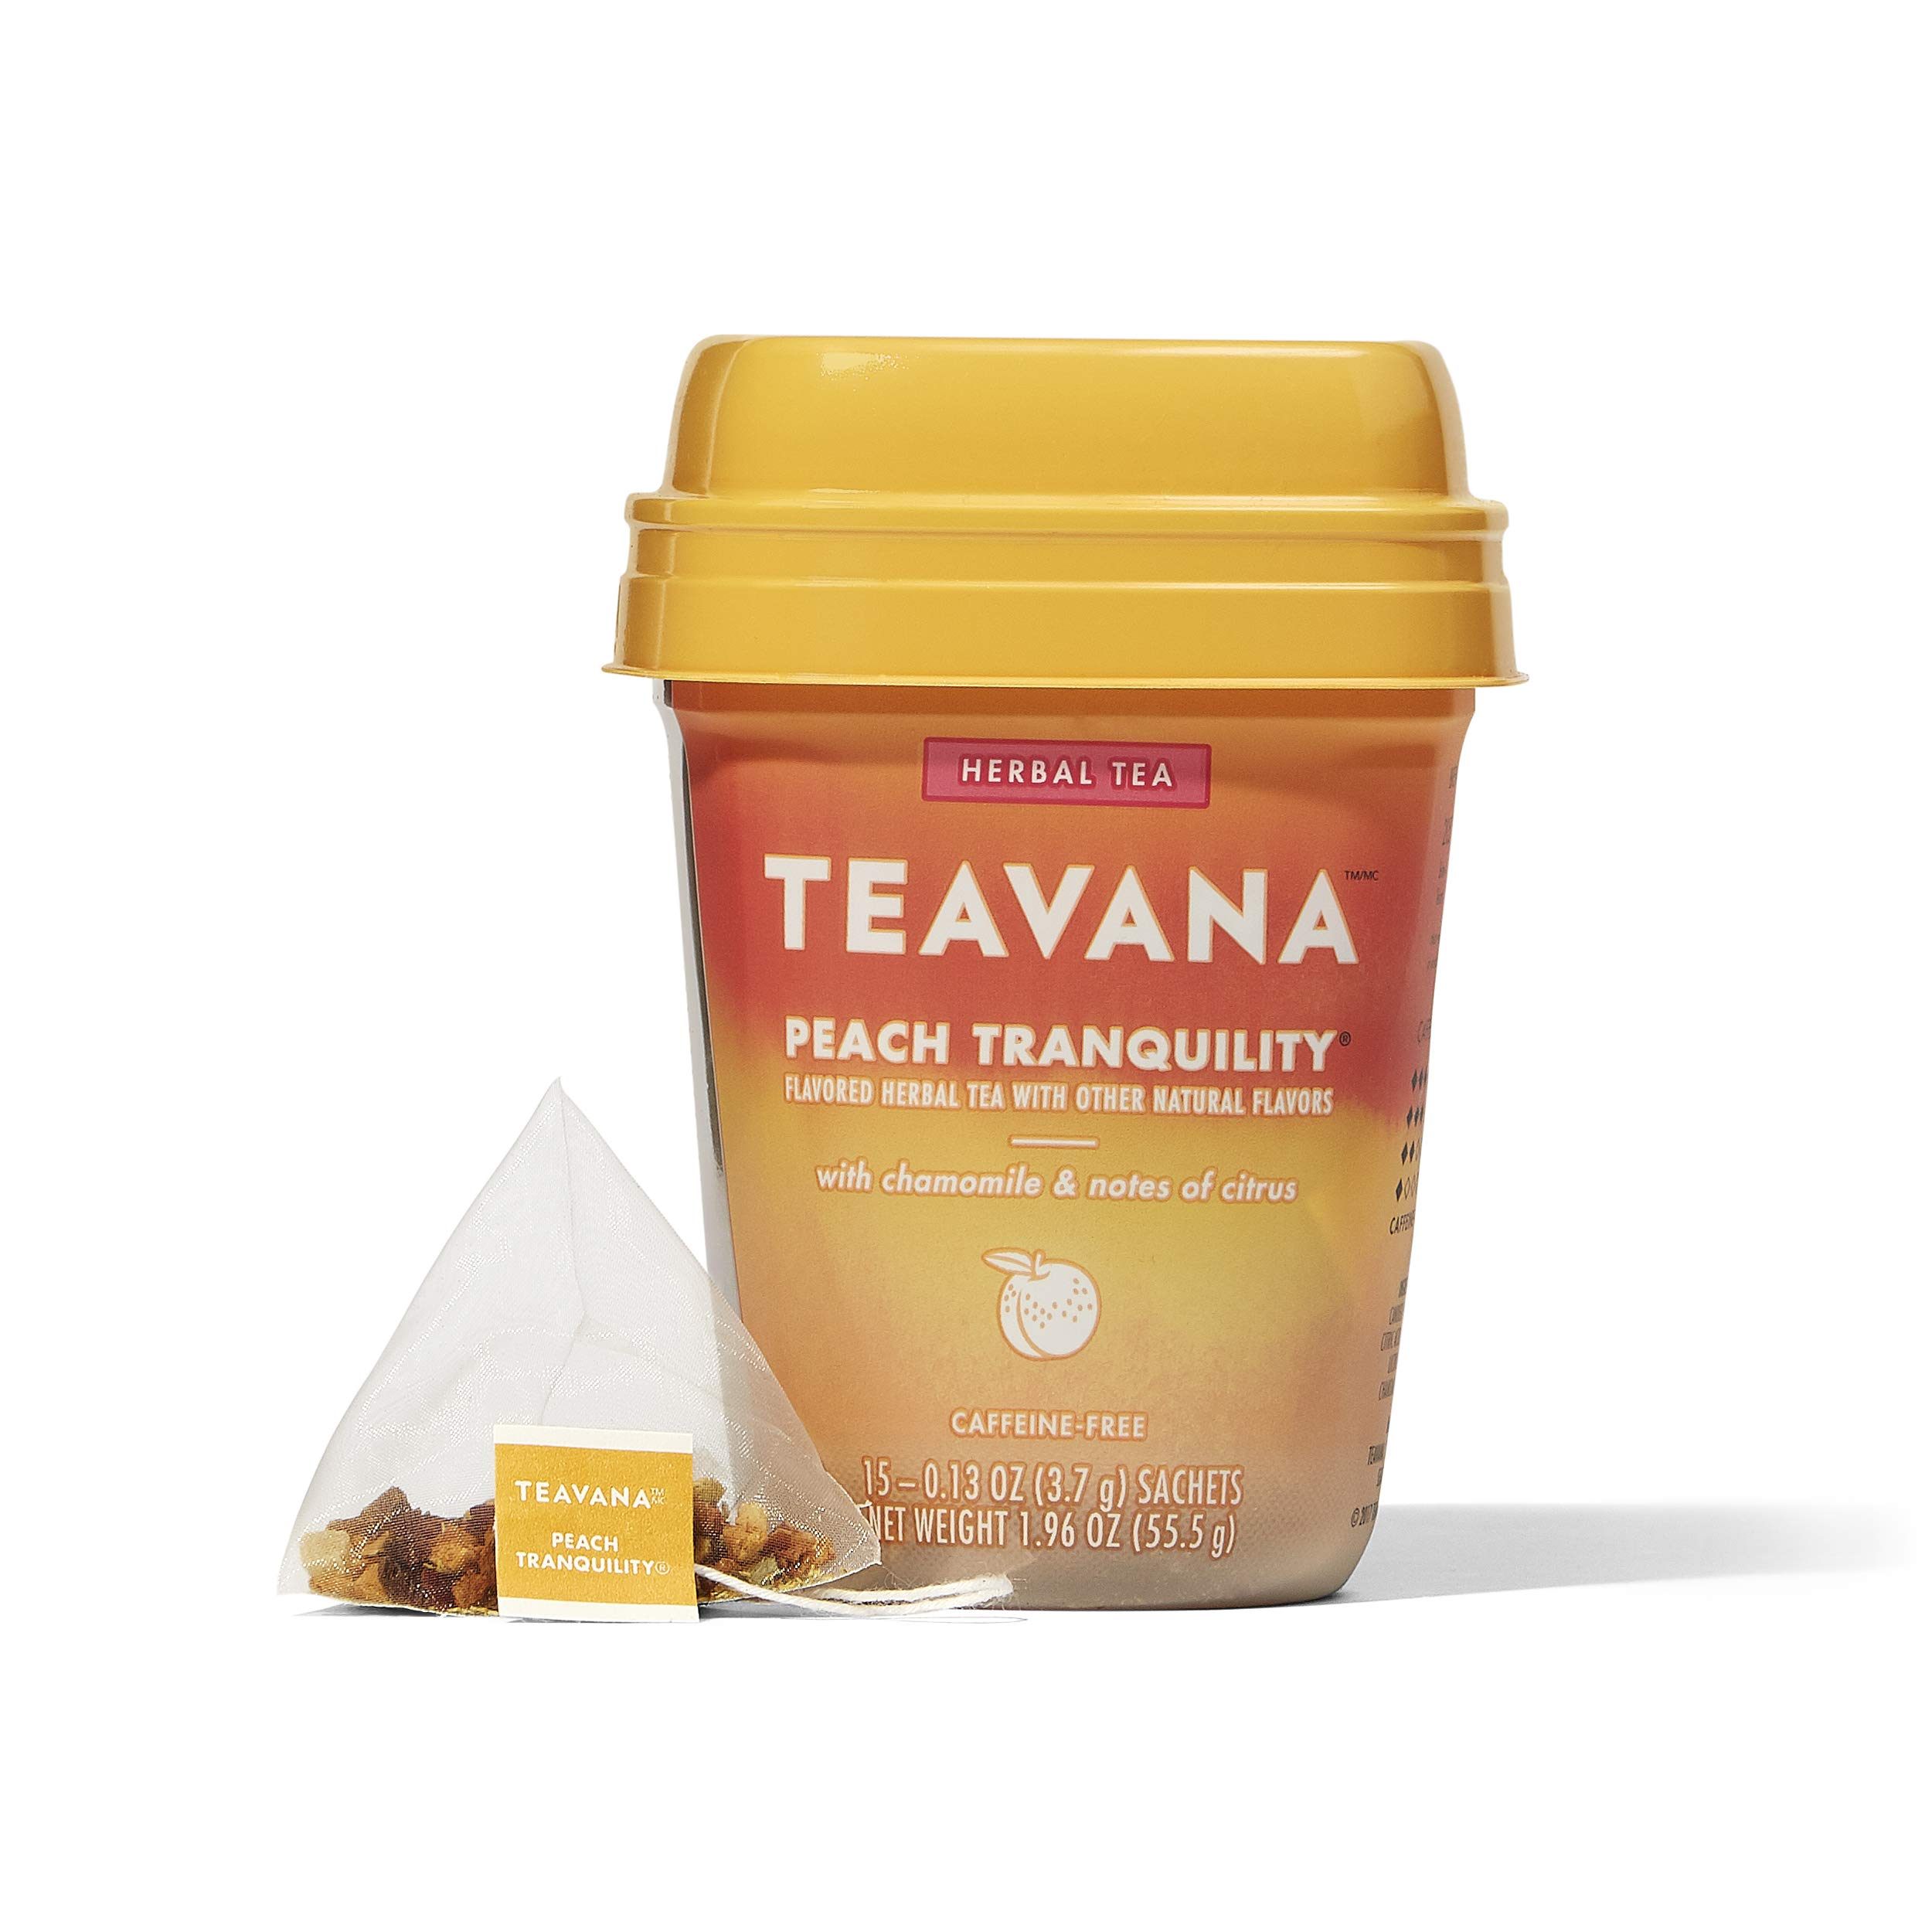 Teavana Peach Tranquility, Herbal Tea With Chamomile and Notes of Citrus, 60 Count (4 packs of 15 sachets) by Teavana